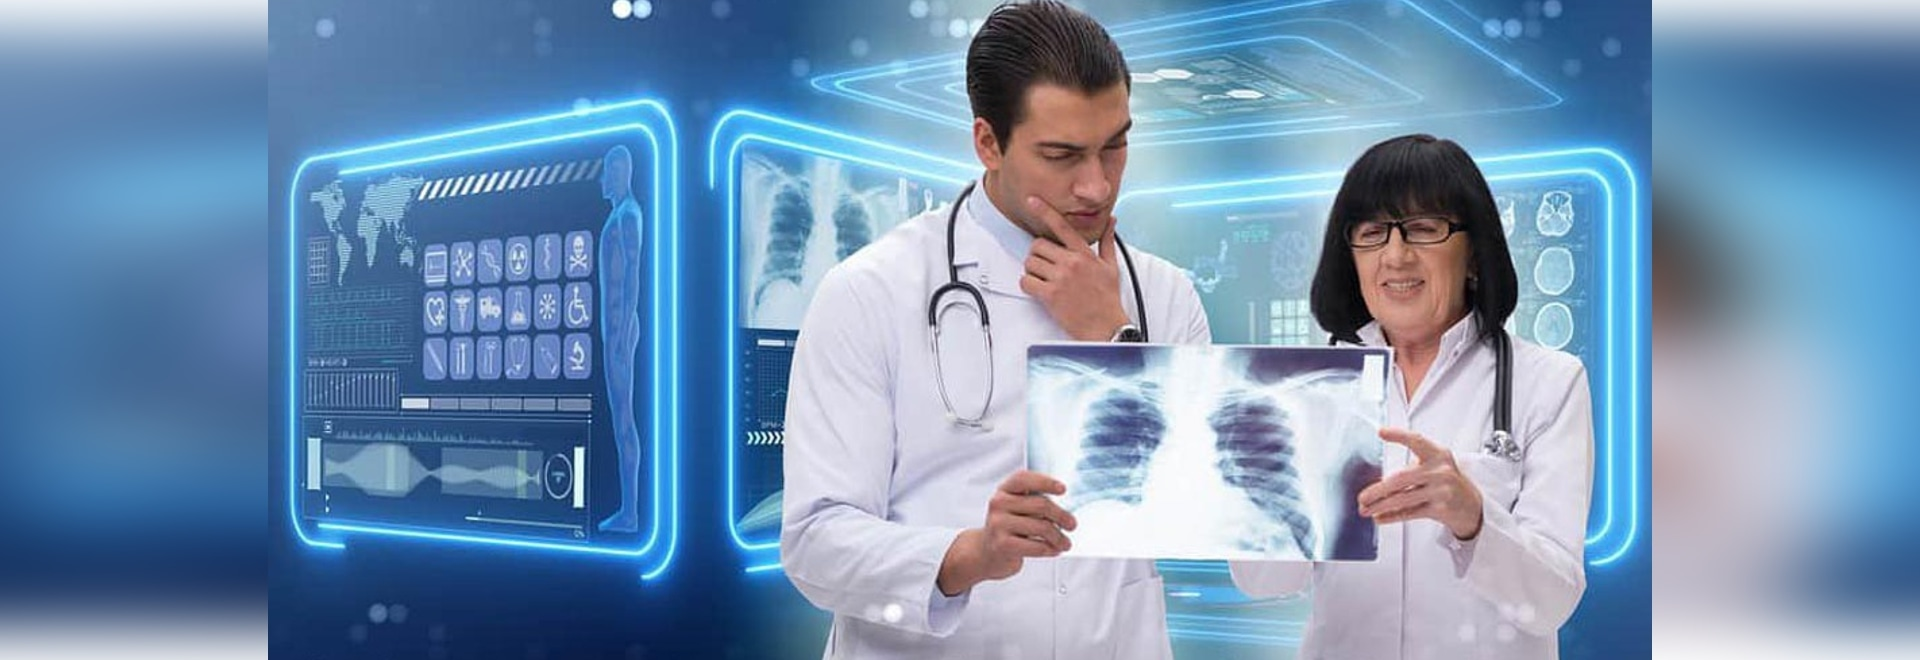 A new study claims AI can help prioritize chest X-rays